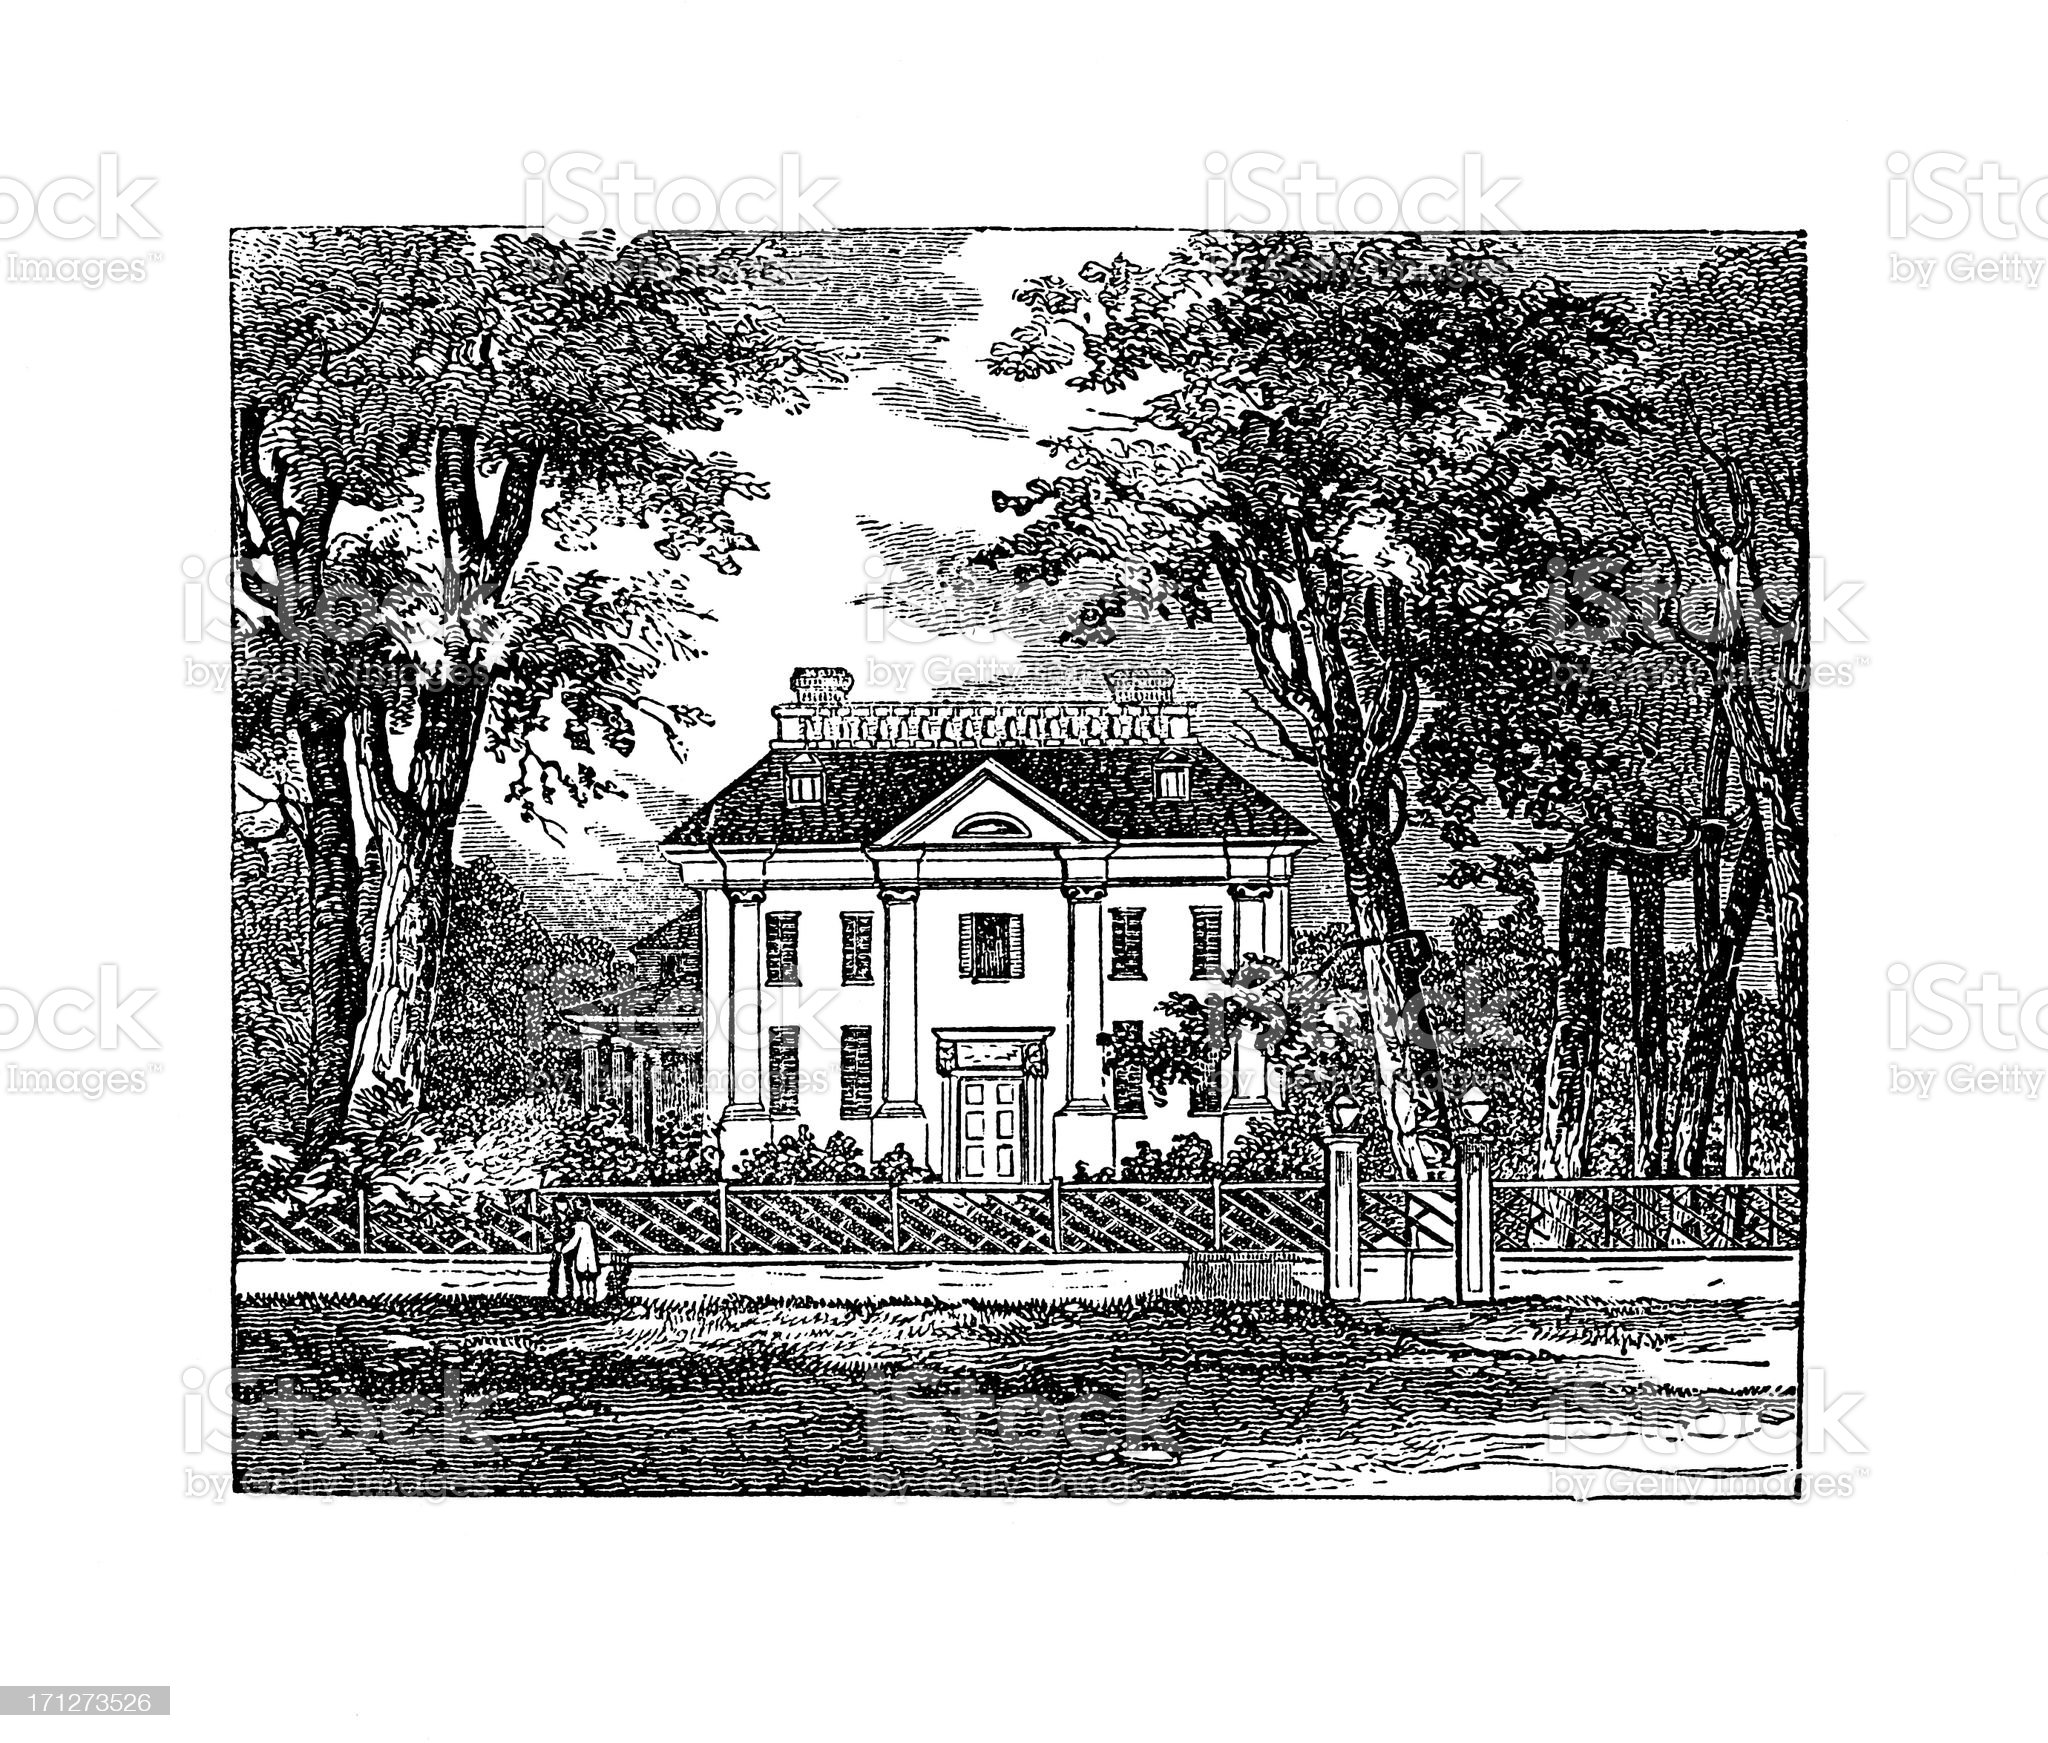 George Wahington's Headquarters at Cambridge, Massachusetts | Historic American Illustrations royalty-free stock vector art